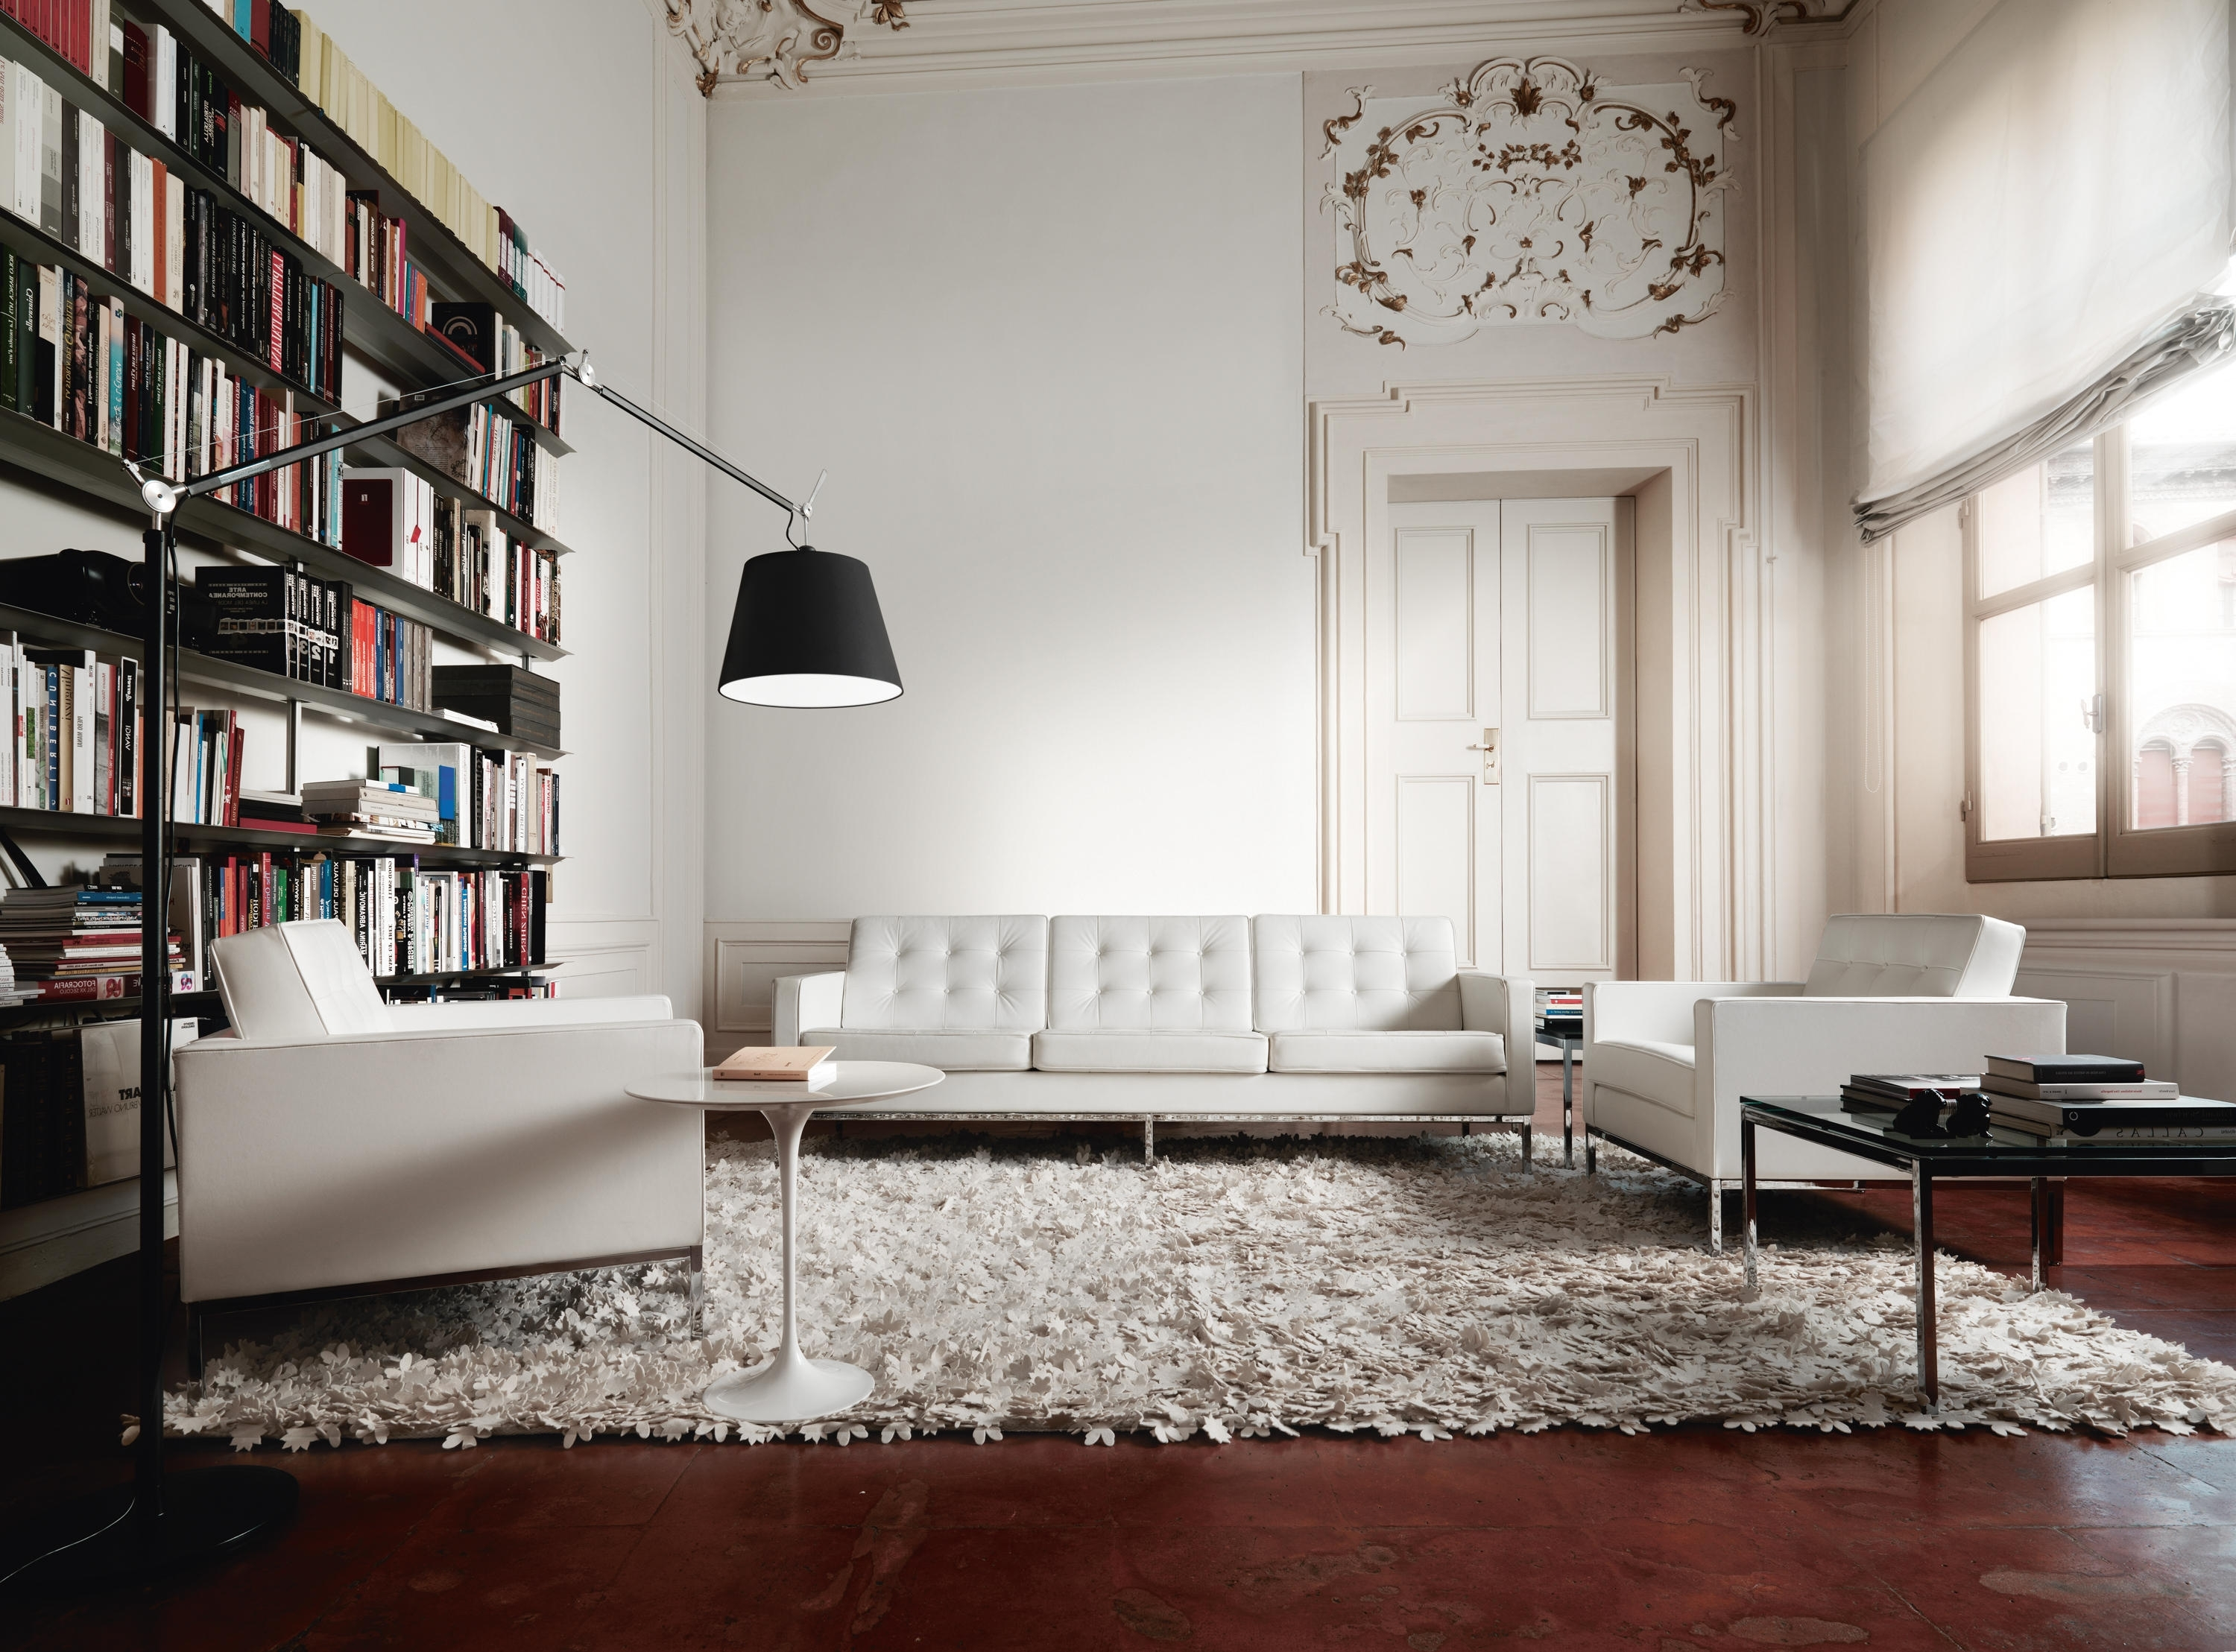 Widely Used Florence Large Sofas Intended For Florence Knoll Lounge 3 Seat Sofa – Lounge Sofas From Knoll (View 20 of 20)